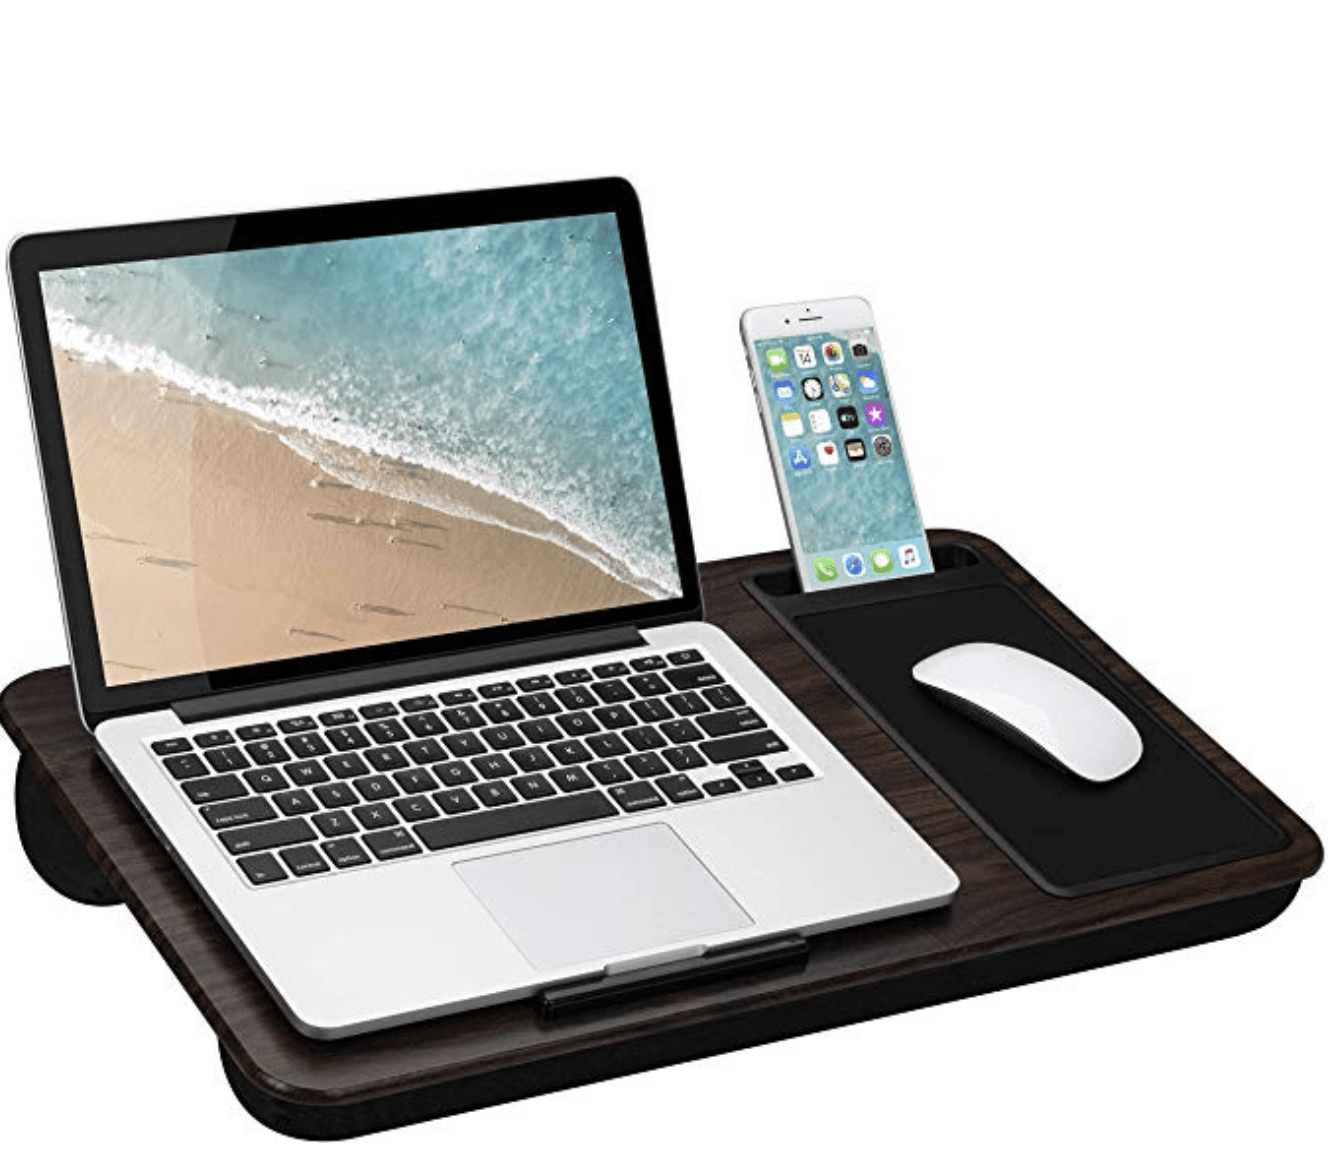 This lap desk with space for a mouse for those of us without space for a desk